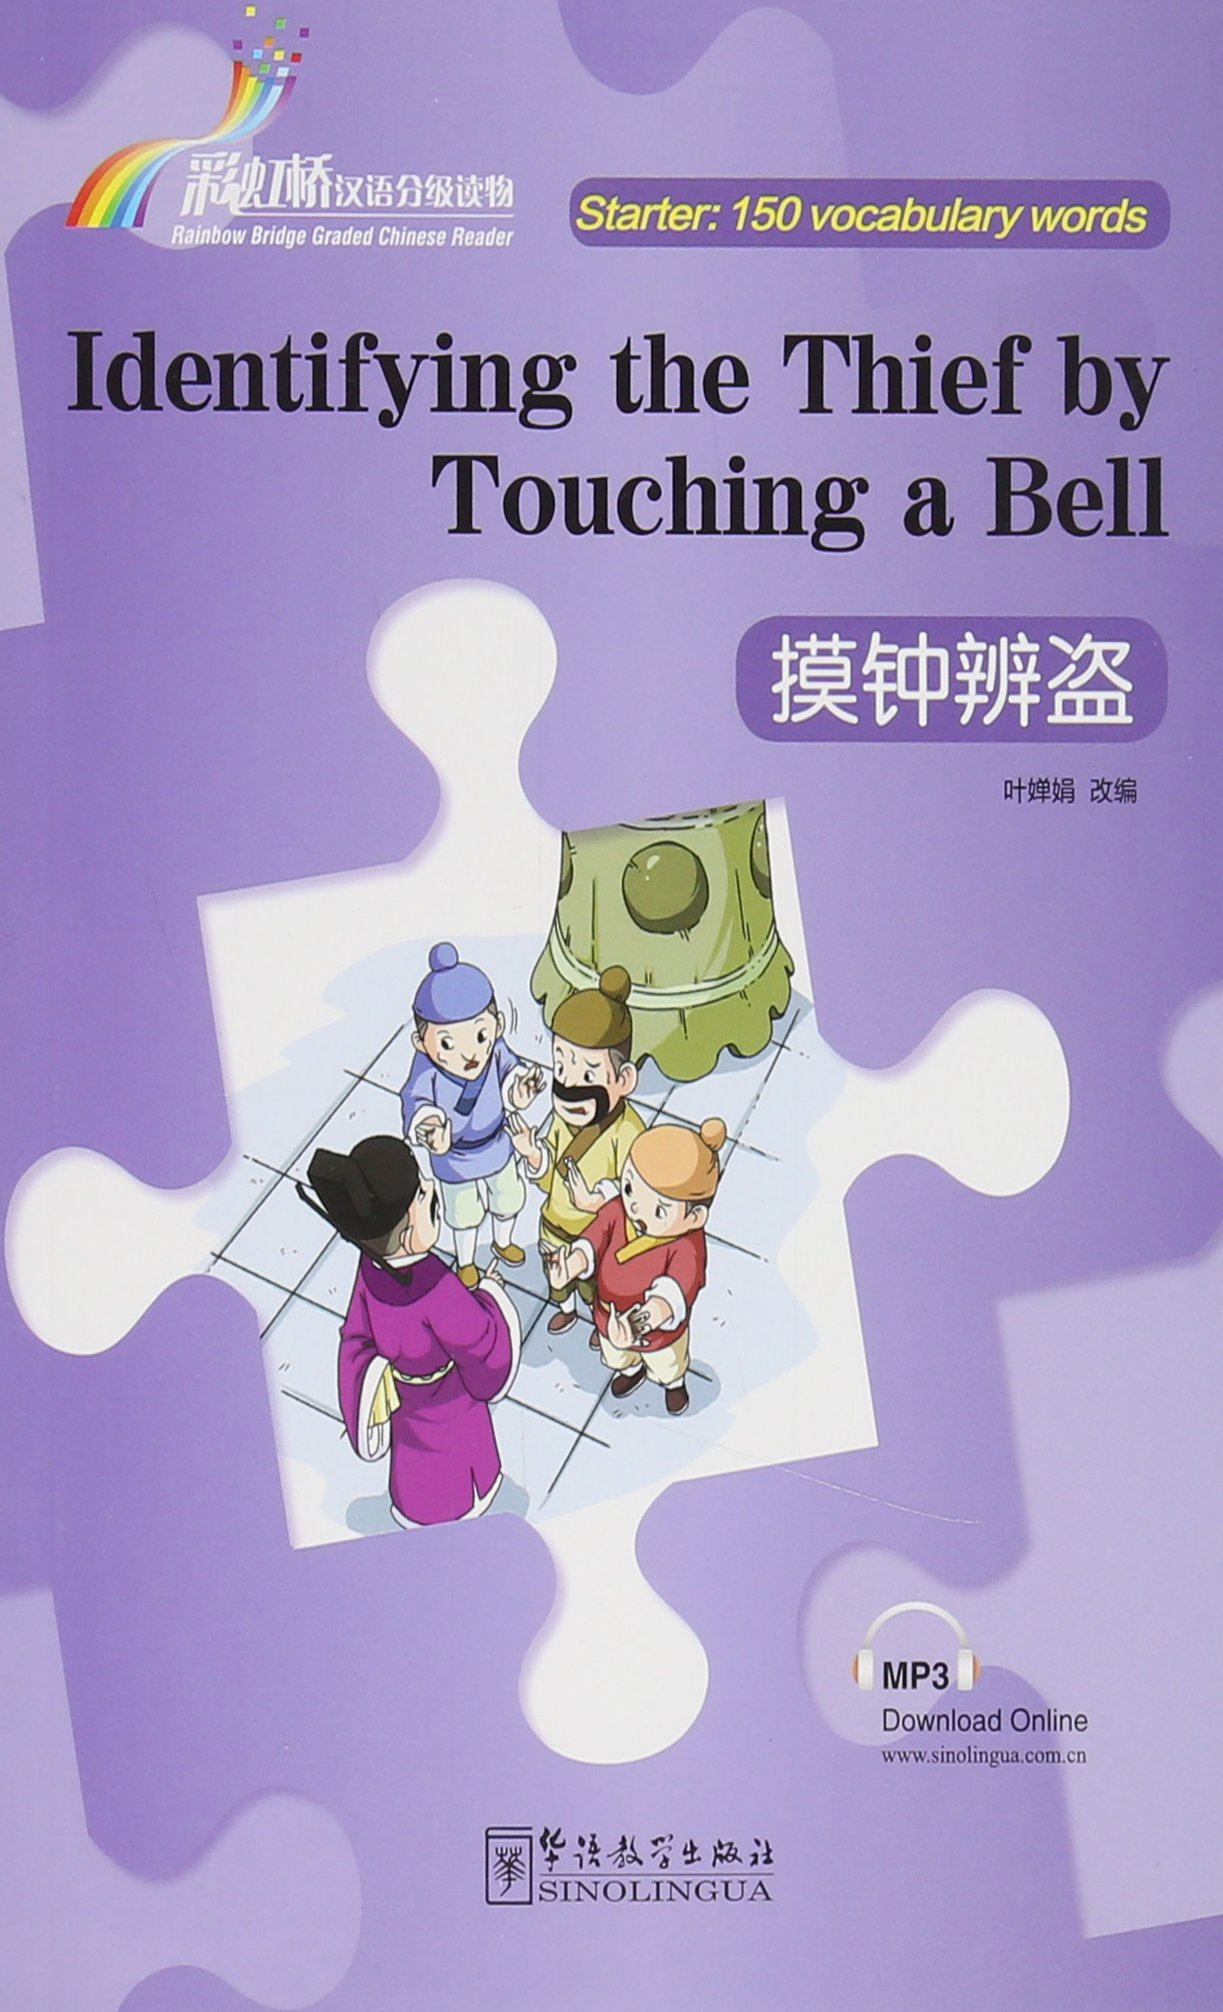 Identifying the Thief by Touching a Bell - Rainbow Bridge Graded Chinese Reader, Starter: 150 Vocabulary Words